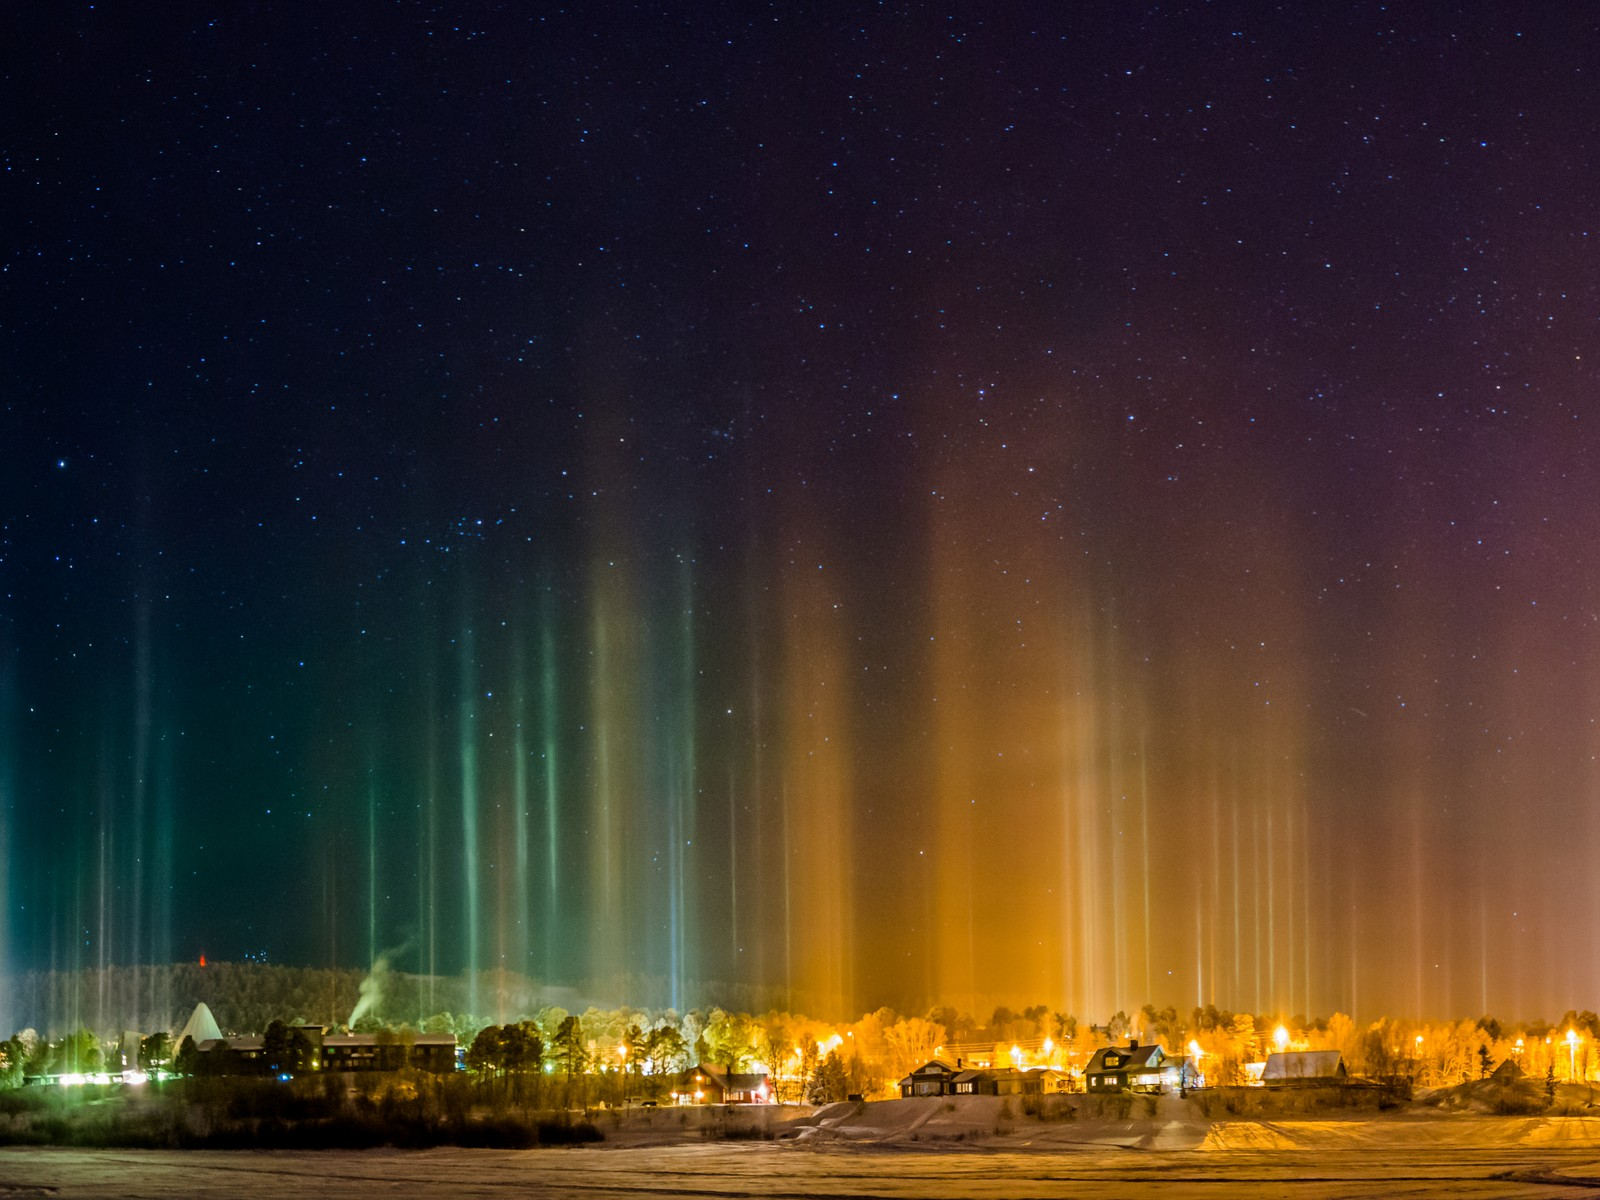 In the town of Karasjok in northern Norway, a spectacular show of light an color painted the night sky yesterday.